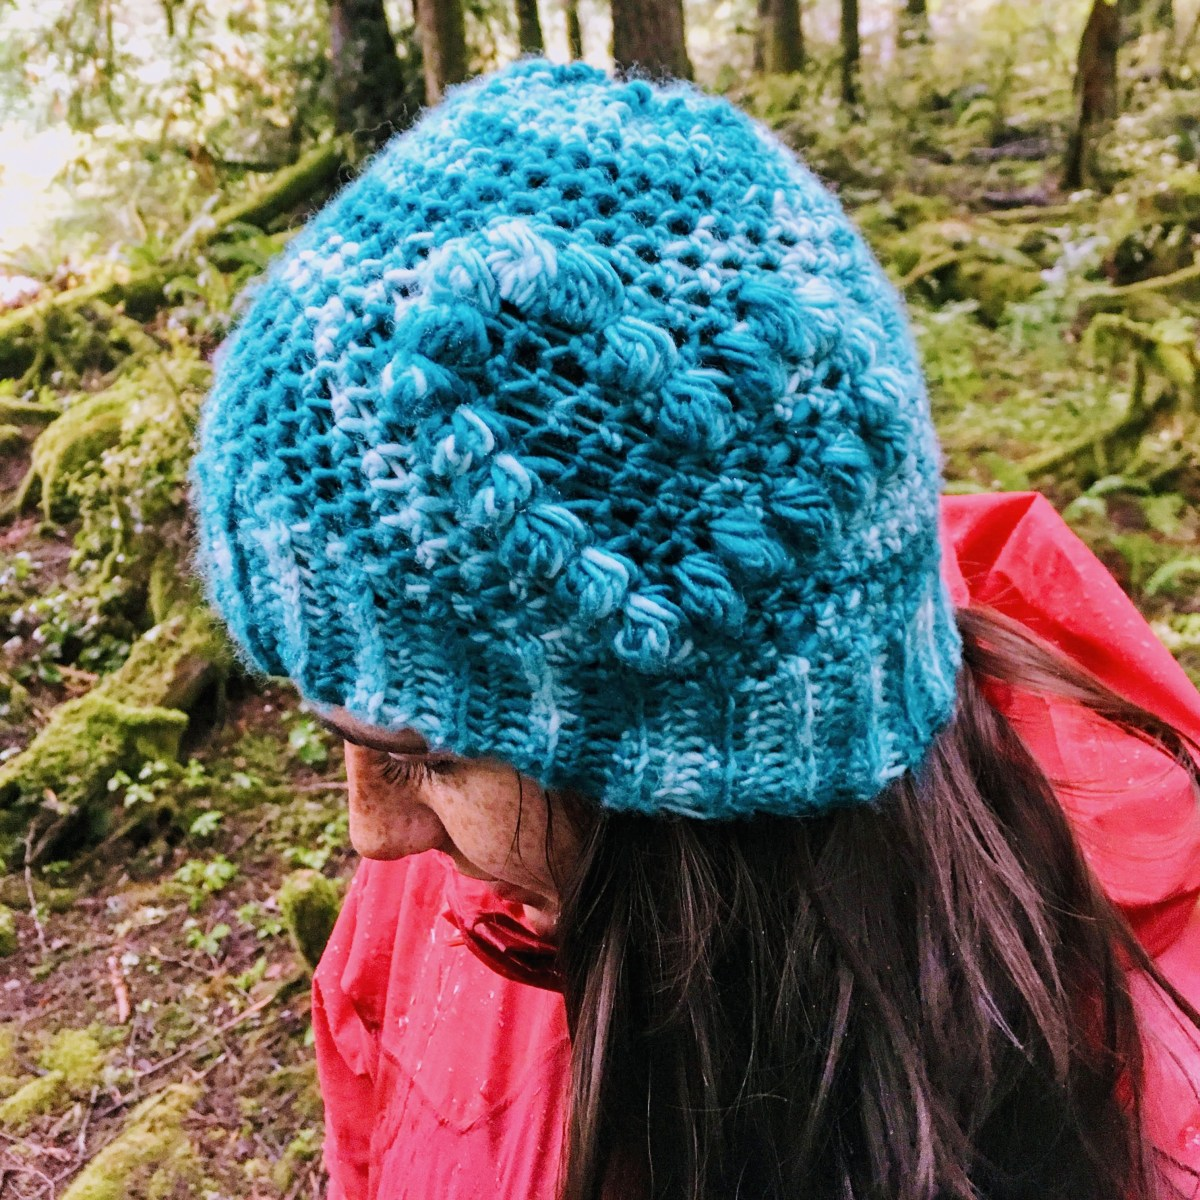 Heart To Beanie Pattern Hookyarncarabiner Shape Crochet Diagram A Woman Stands In The Forest Rain Blue Crocheted With